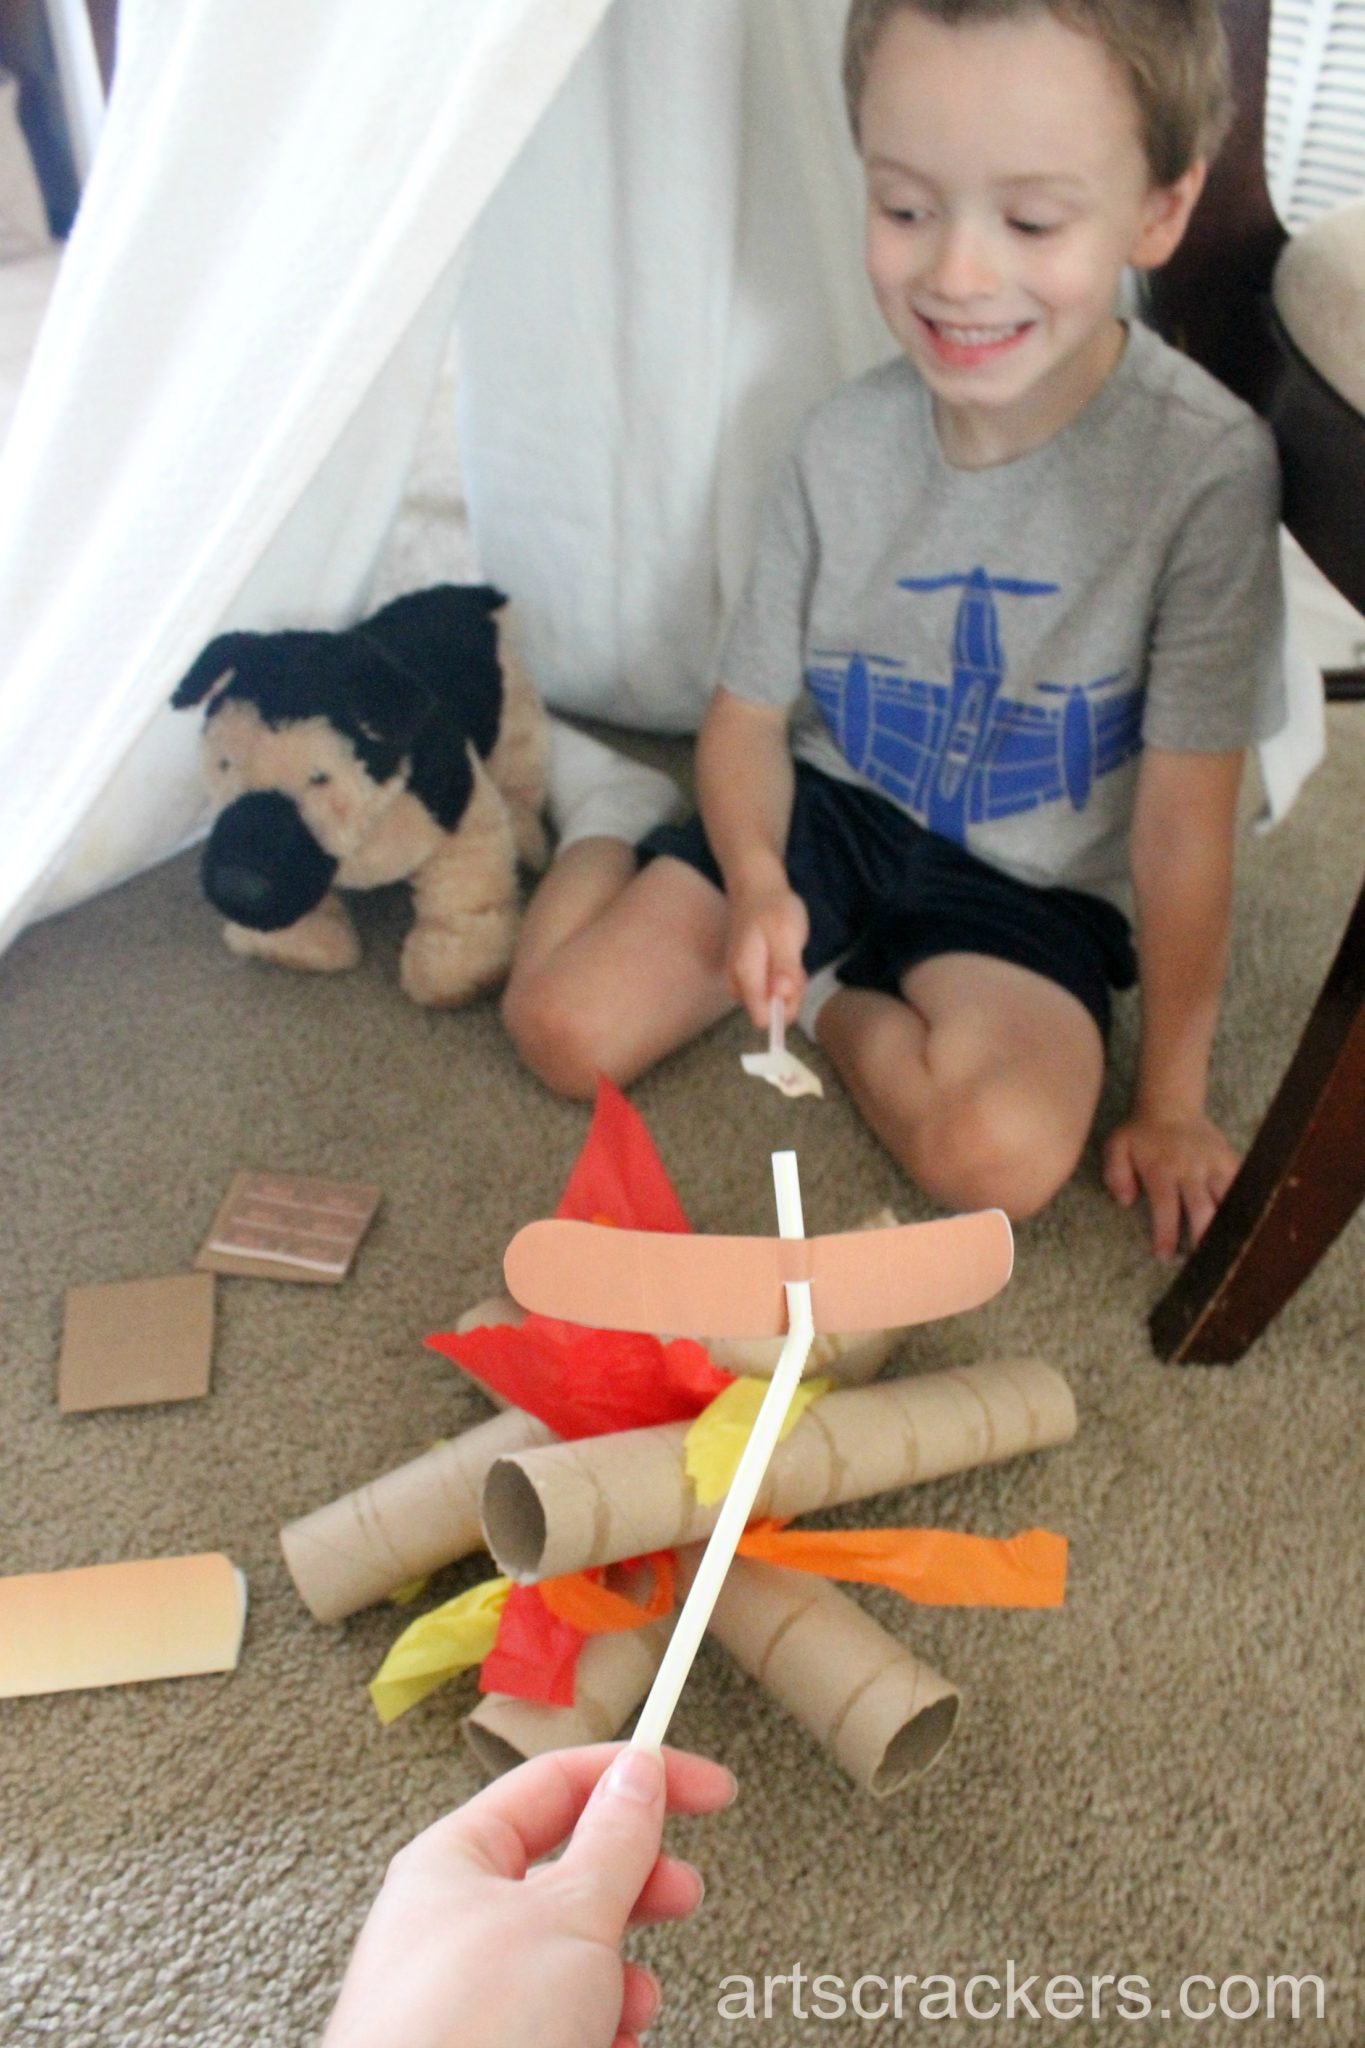 Indoor Camping Imaginative Play Roasting Smores and Hot Dogs